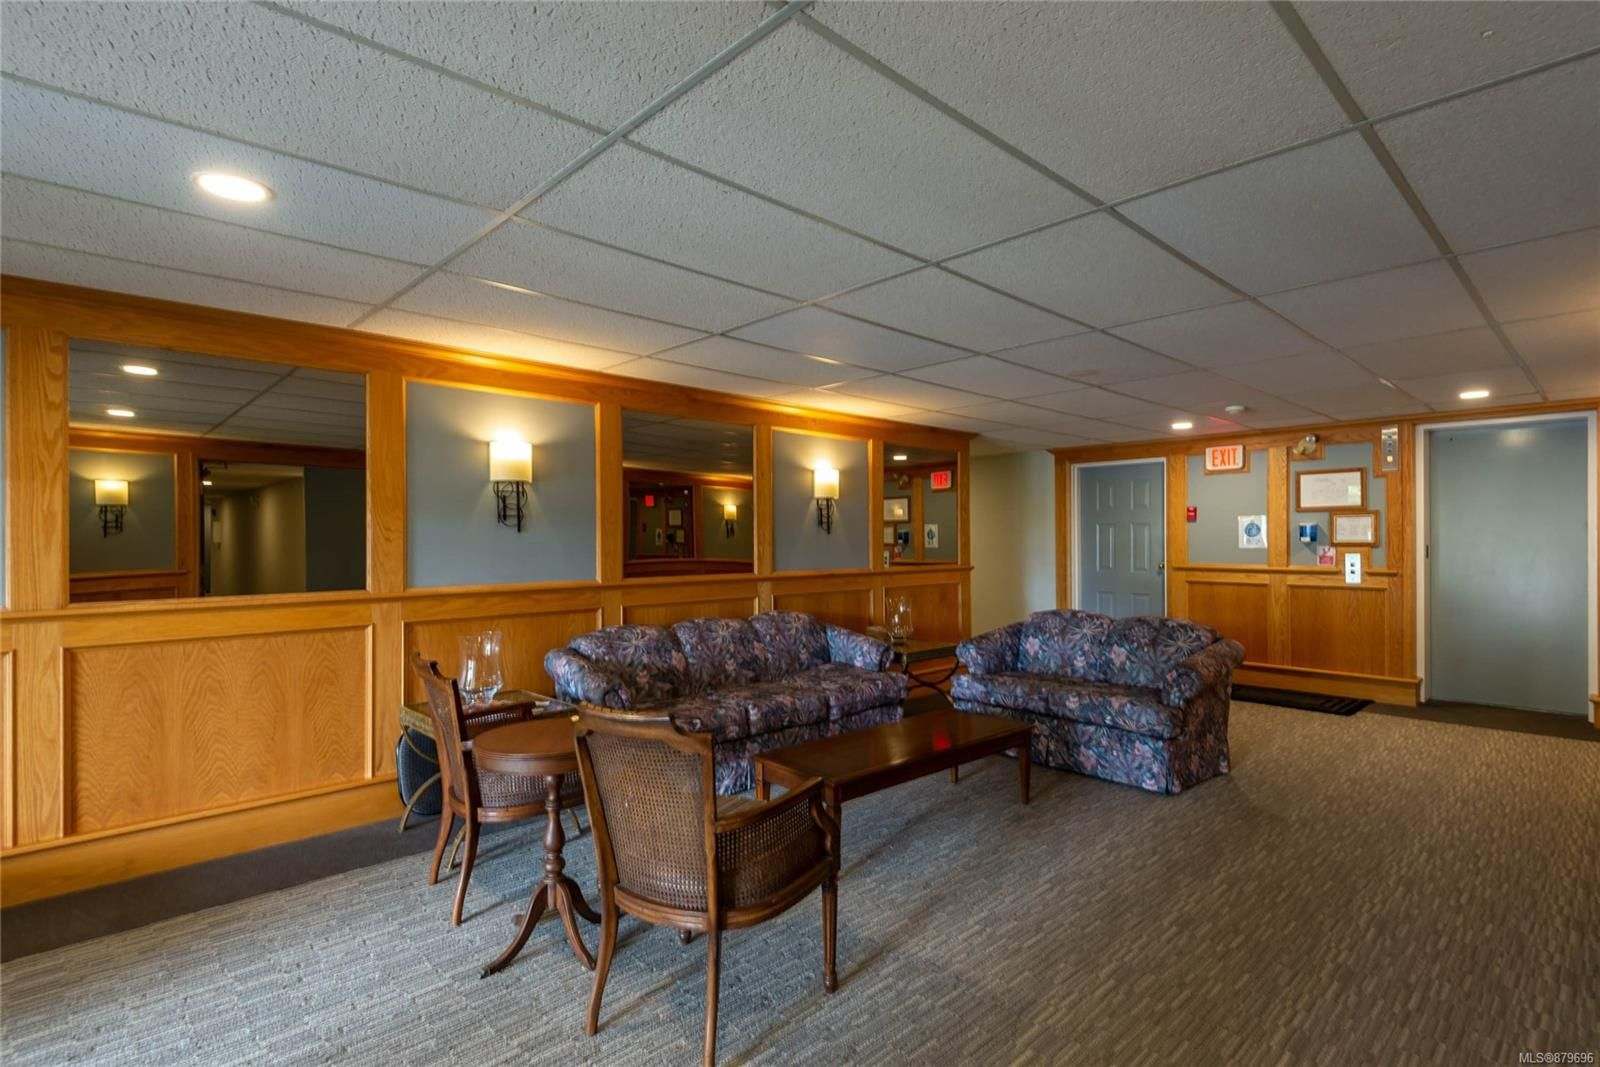 Photo 29: Photos: 219 390 S Island Hwy in : CR Campbell River West Condo for sale (Campbell River)  : MLS®# 879696